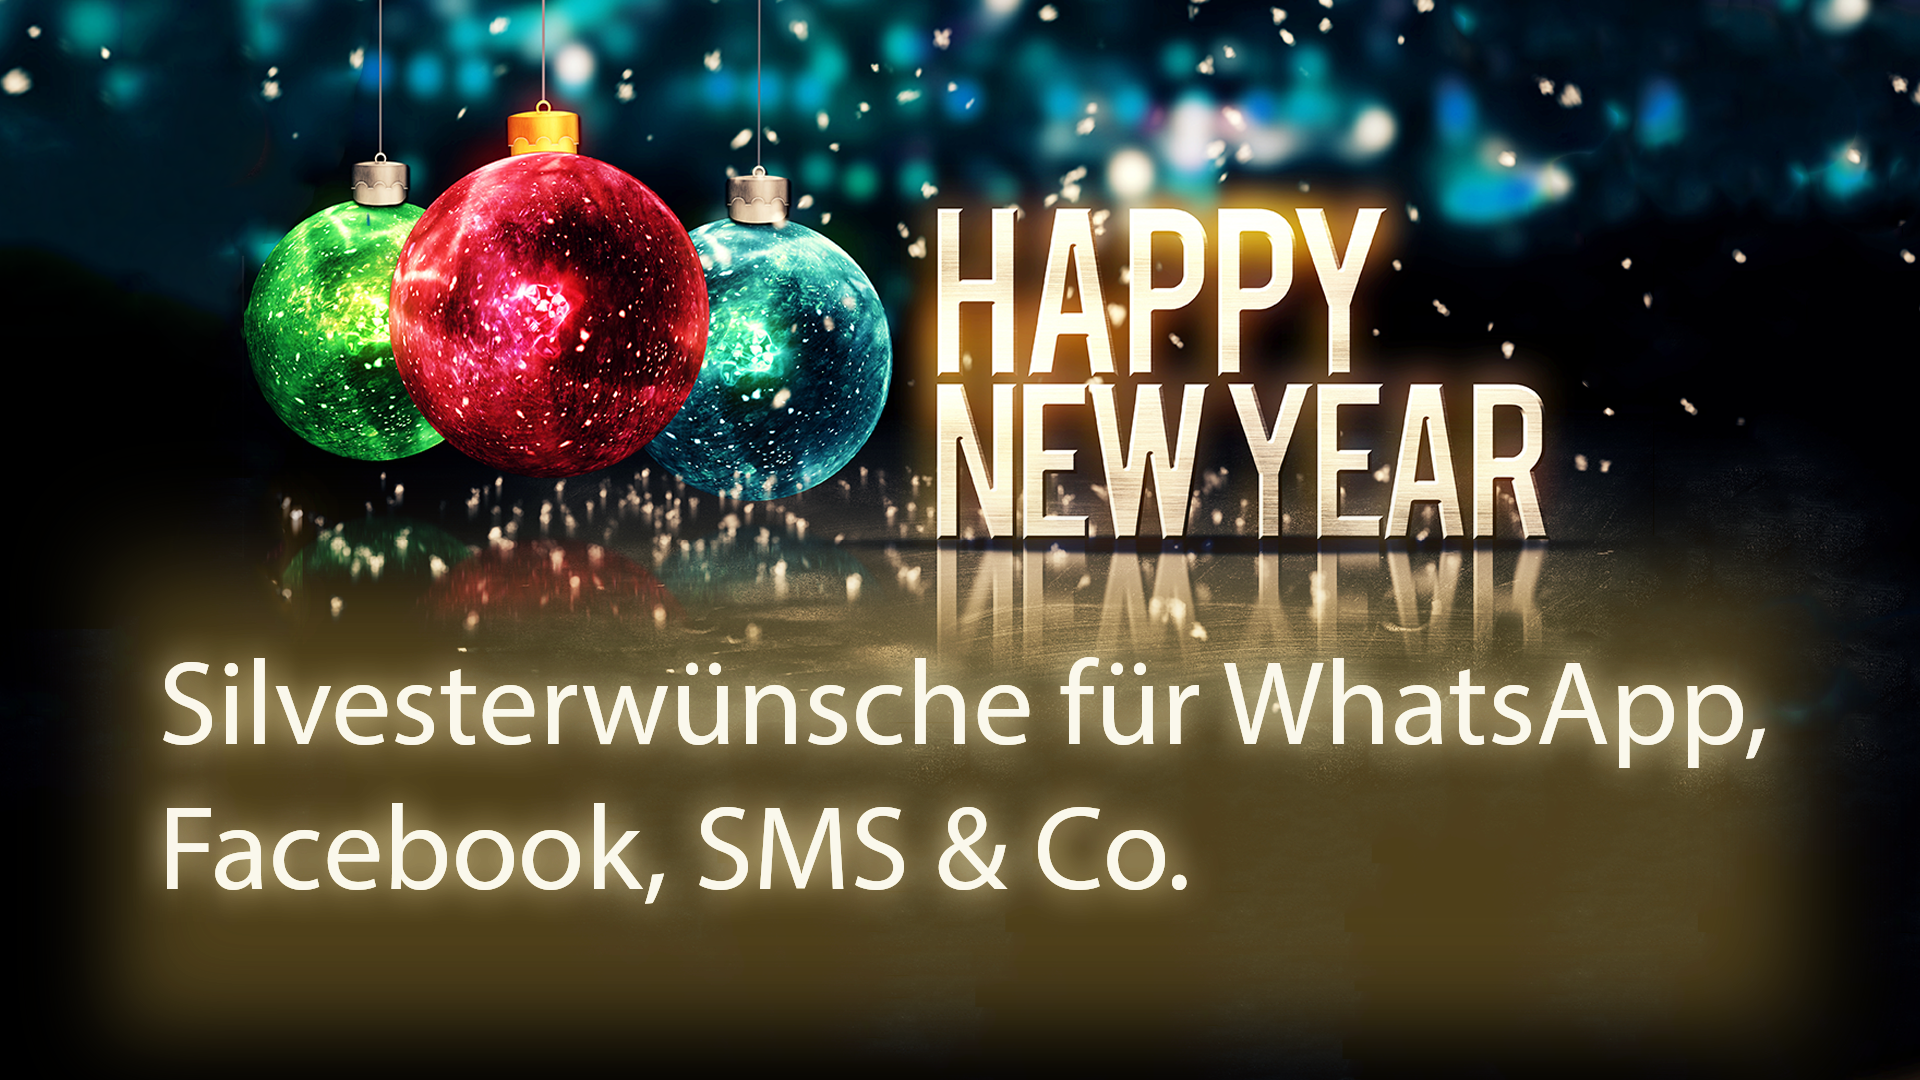 sms spruch silvester